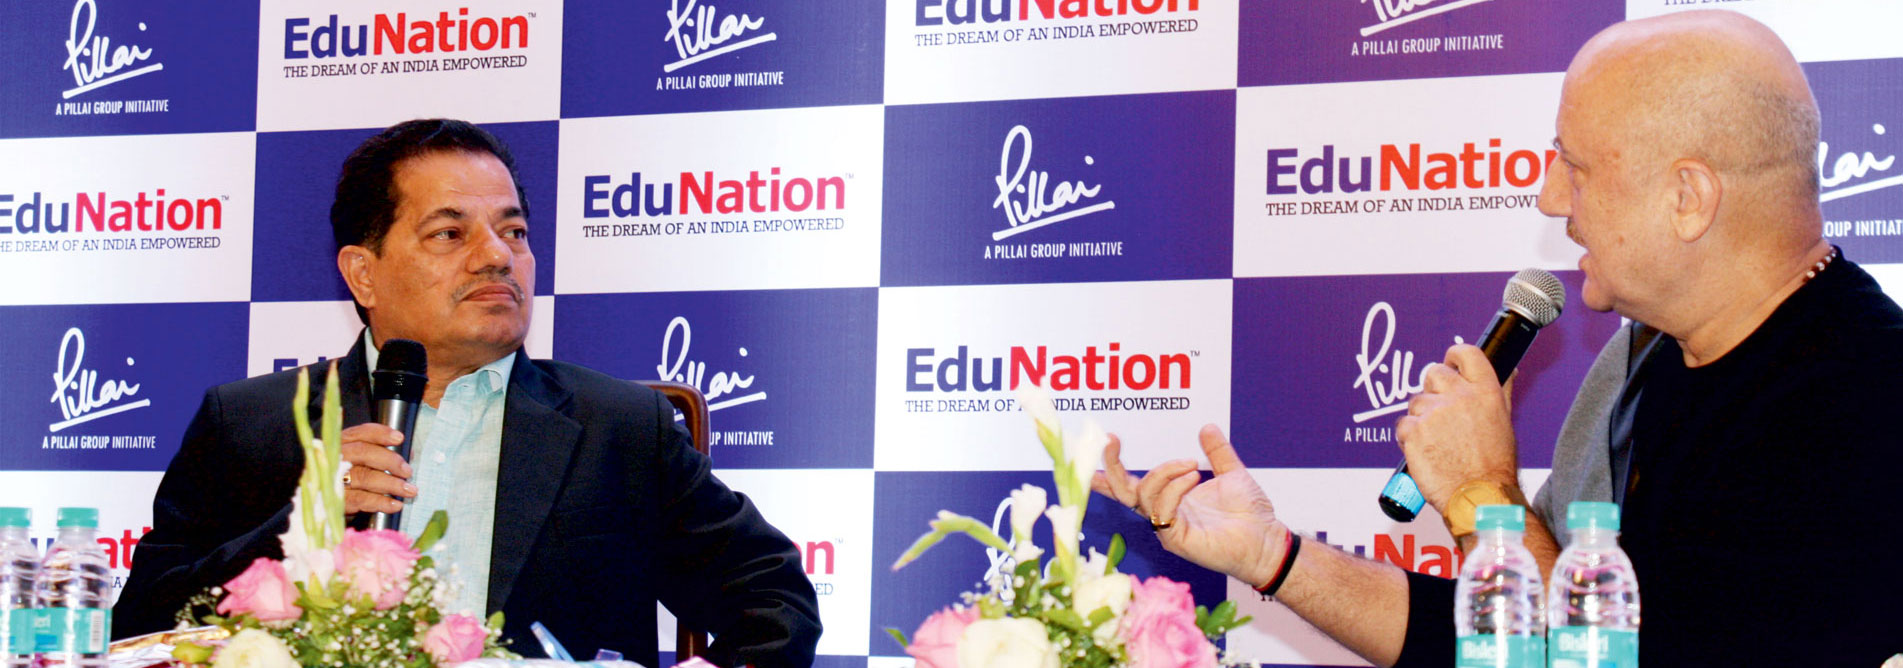 EduNation-Book-Launch-31-jan-2015-3